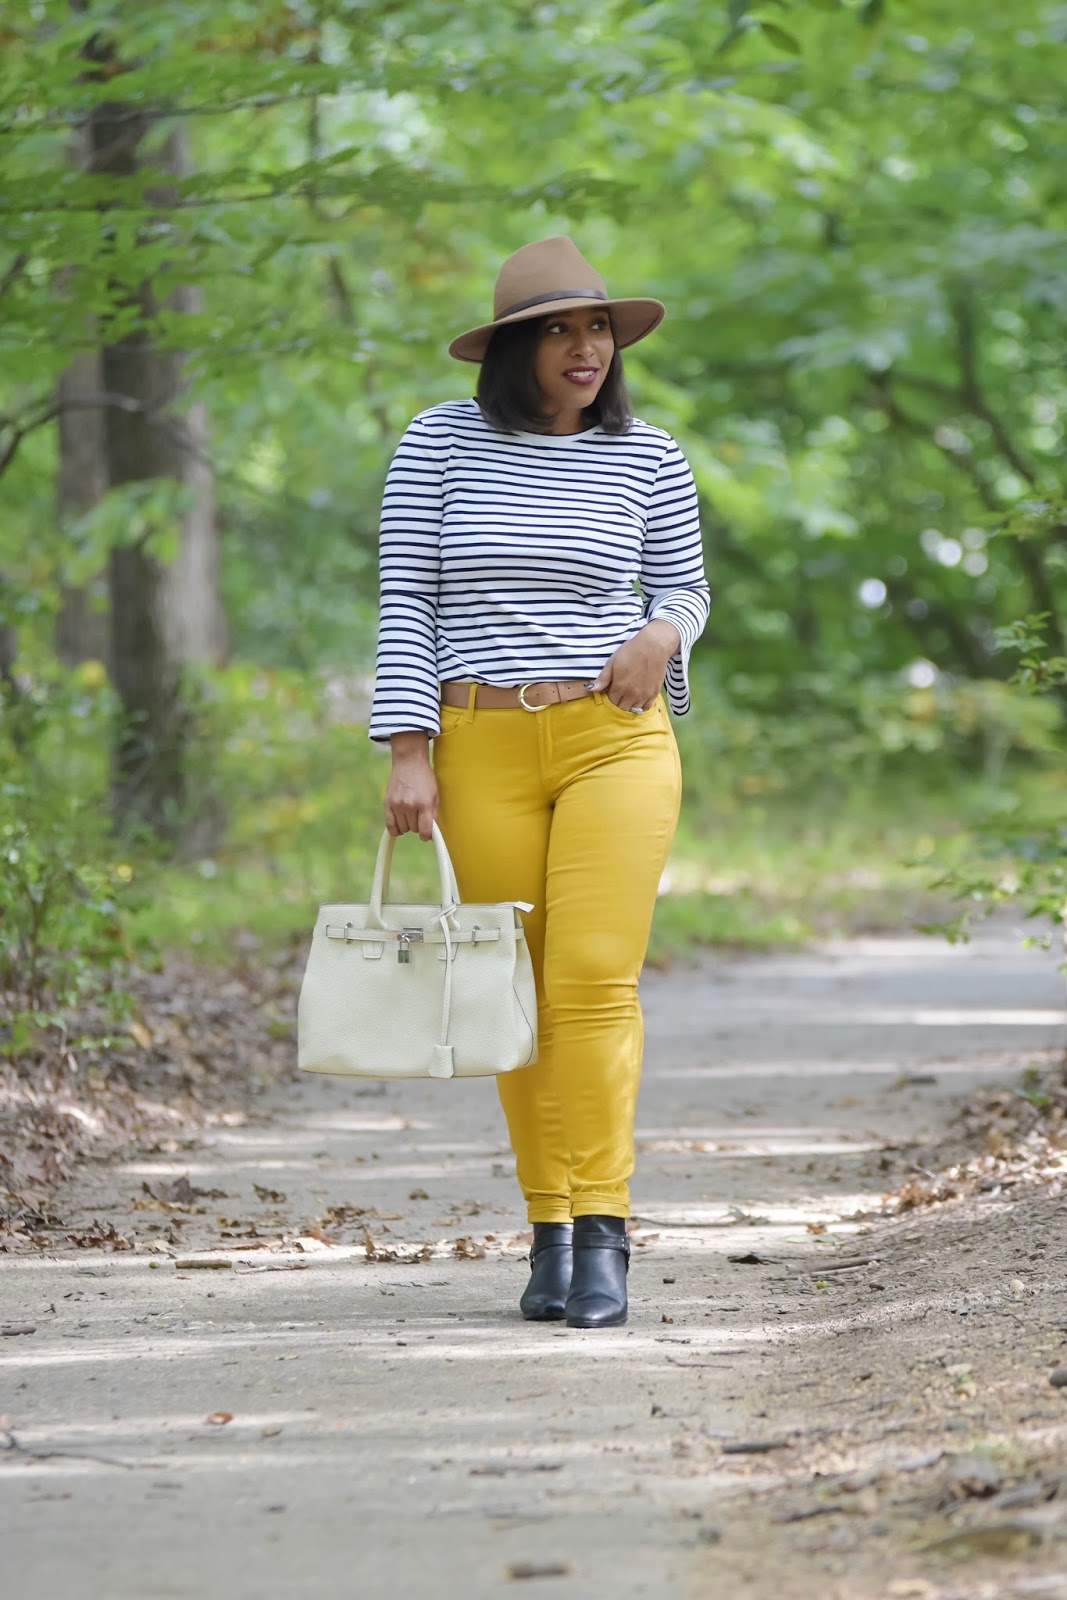 Old Navy Style, Say Hi, stripe top, colored denim, fall outfit looks, wide brim hats, black booties for fall, fall outfit ideas, colored denim